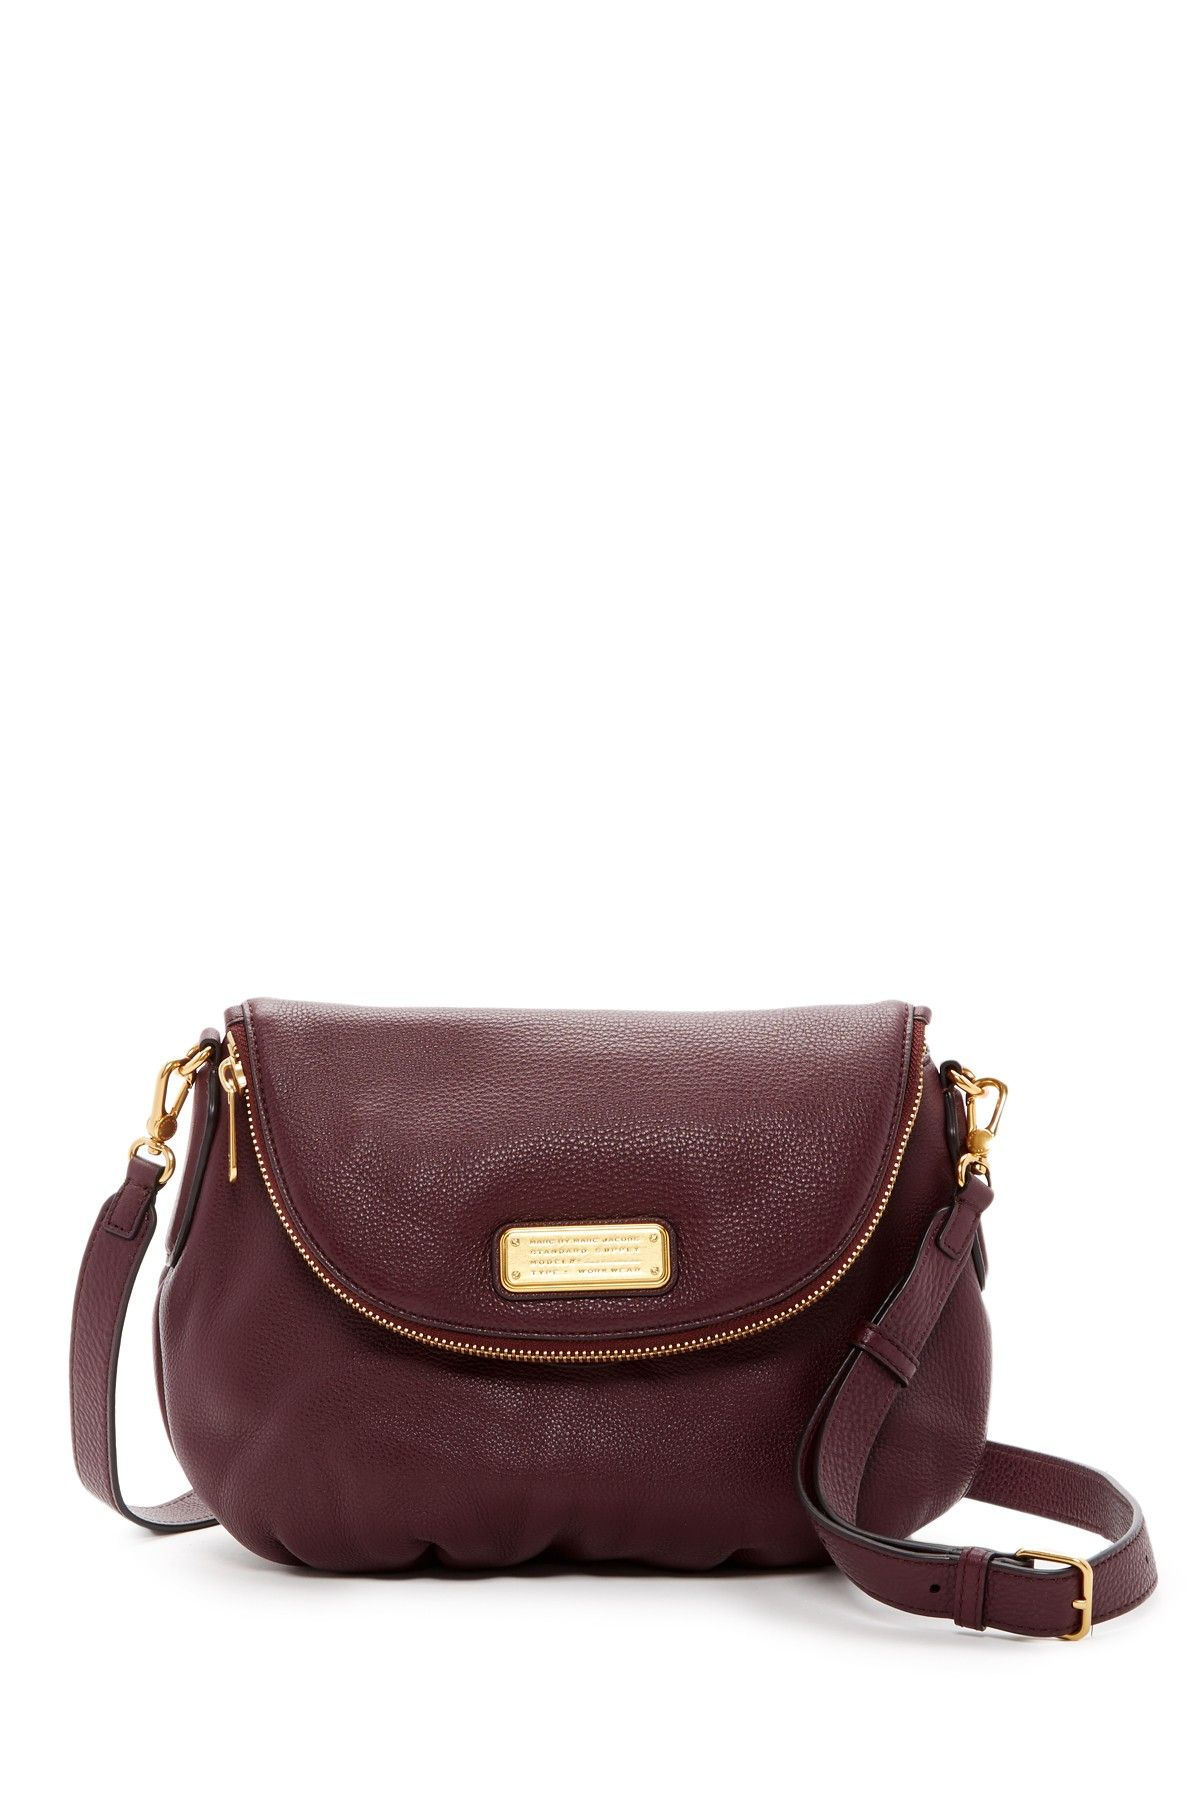 c14208be3b56 New Q Natasha Leather Crossbody Bag by Marc by Marc Jacobs on   nordstrom rack